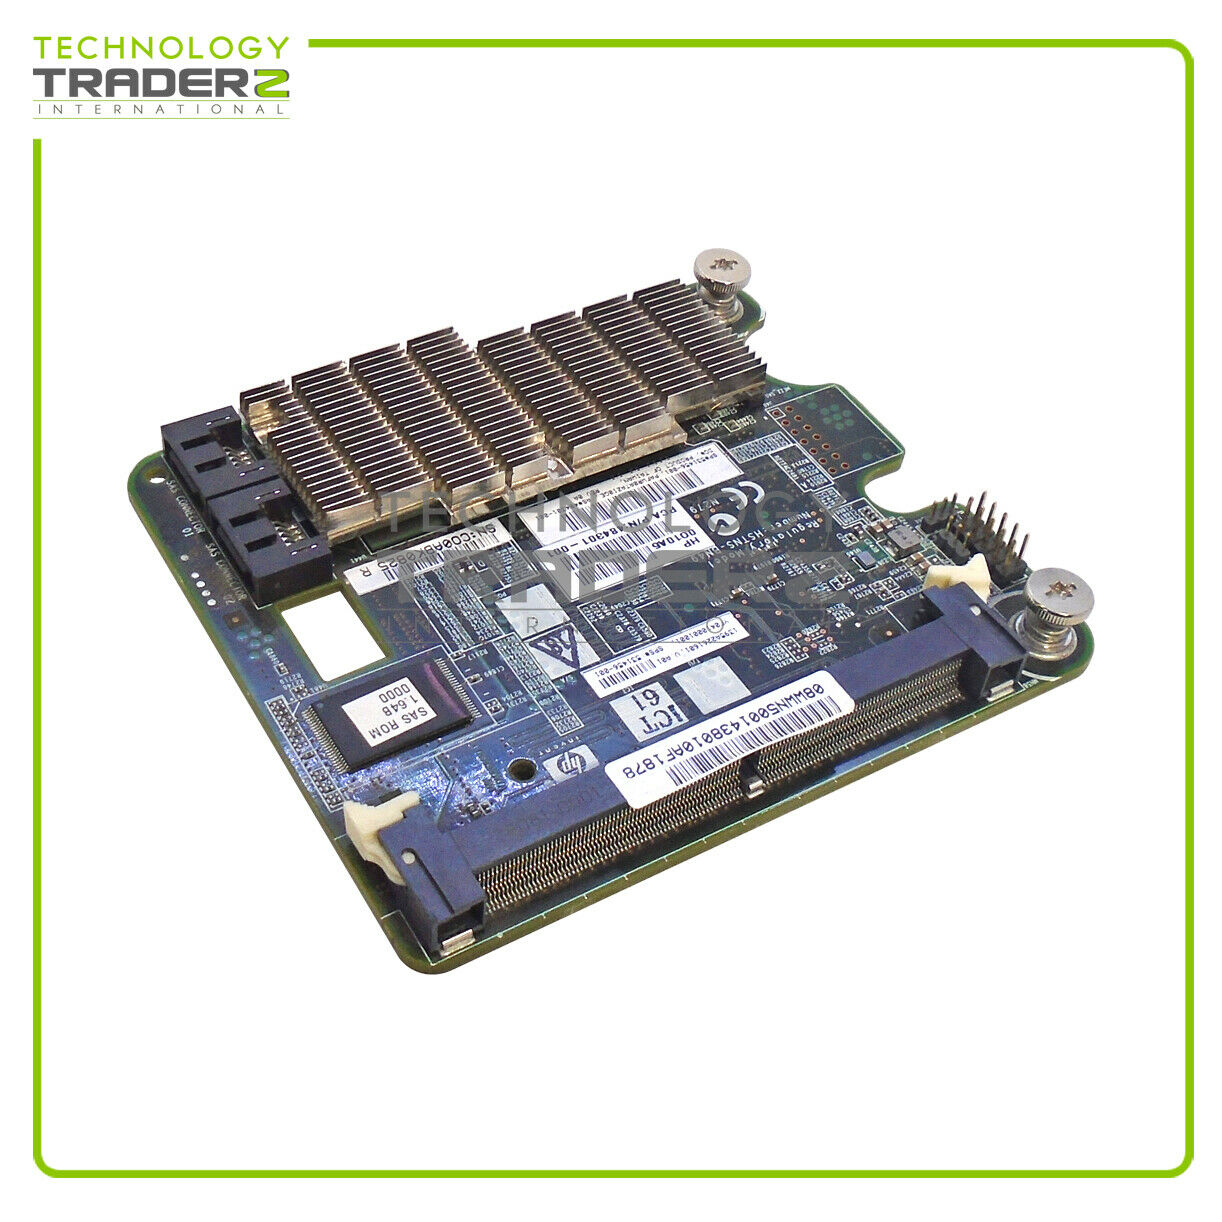 484299-B21 HP P712m/ZM Int PCIe x8 SAS Controller 531456-001 484301-001 *Pulled*